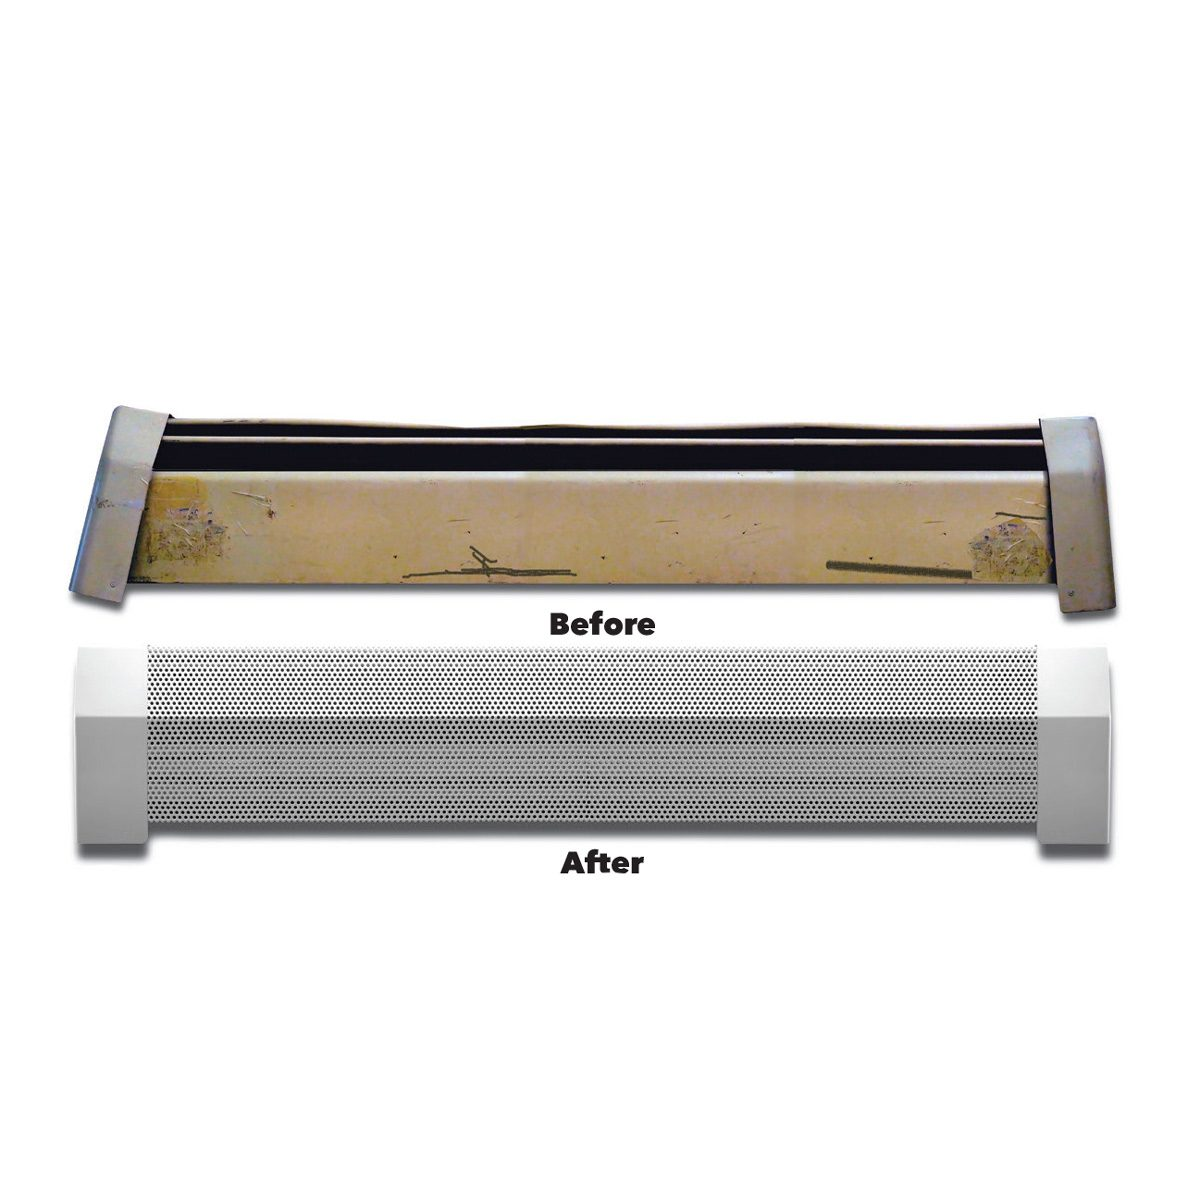 11. Replace Baseboard Heater Covers